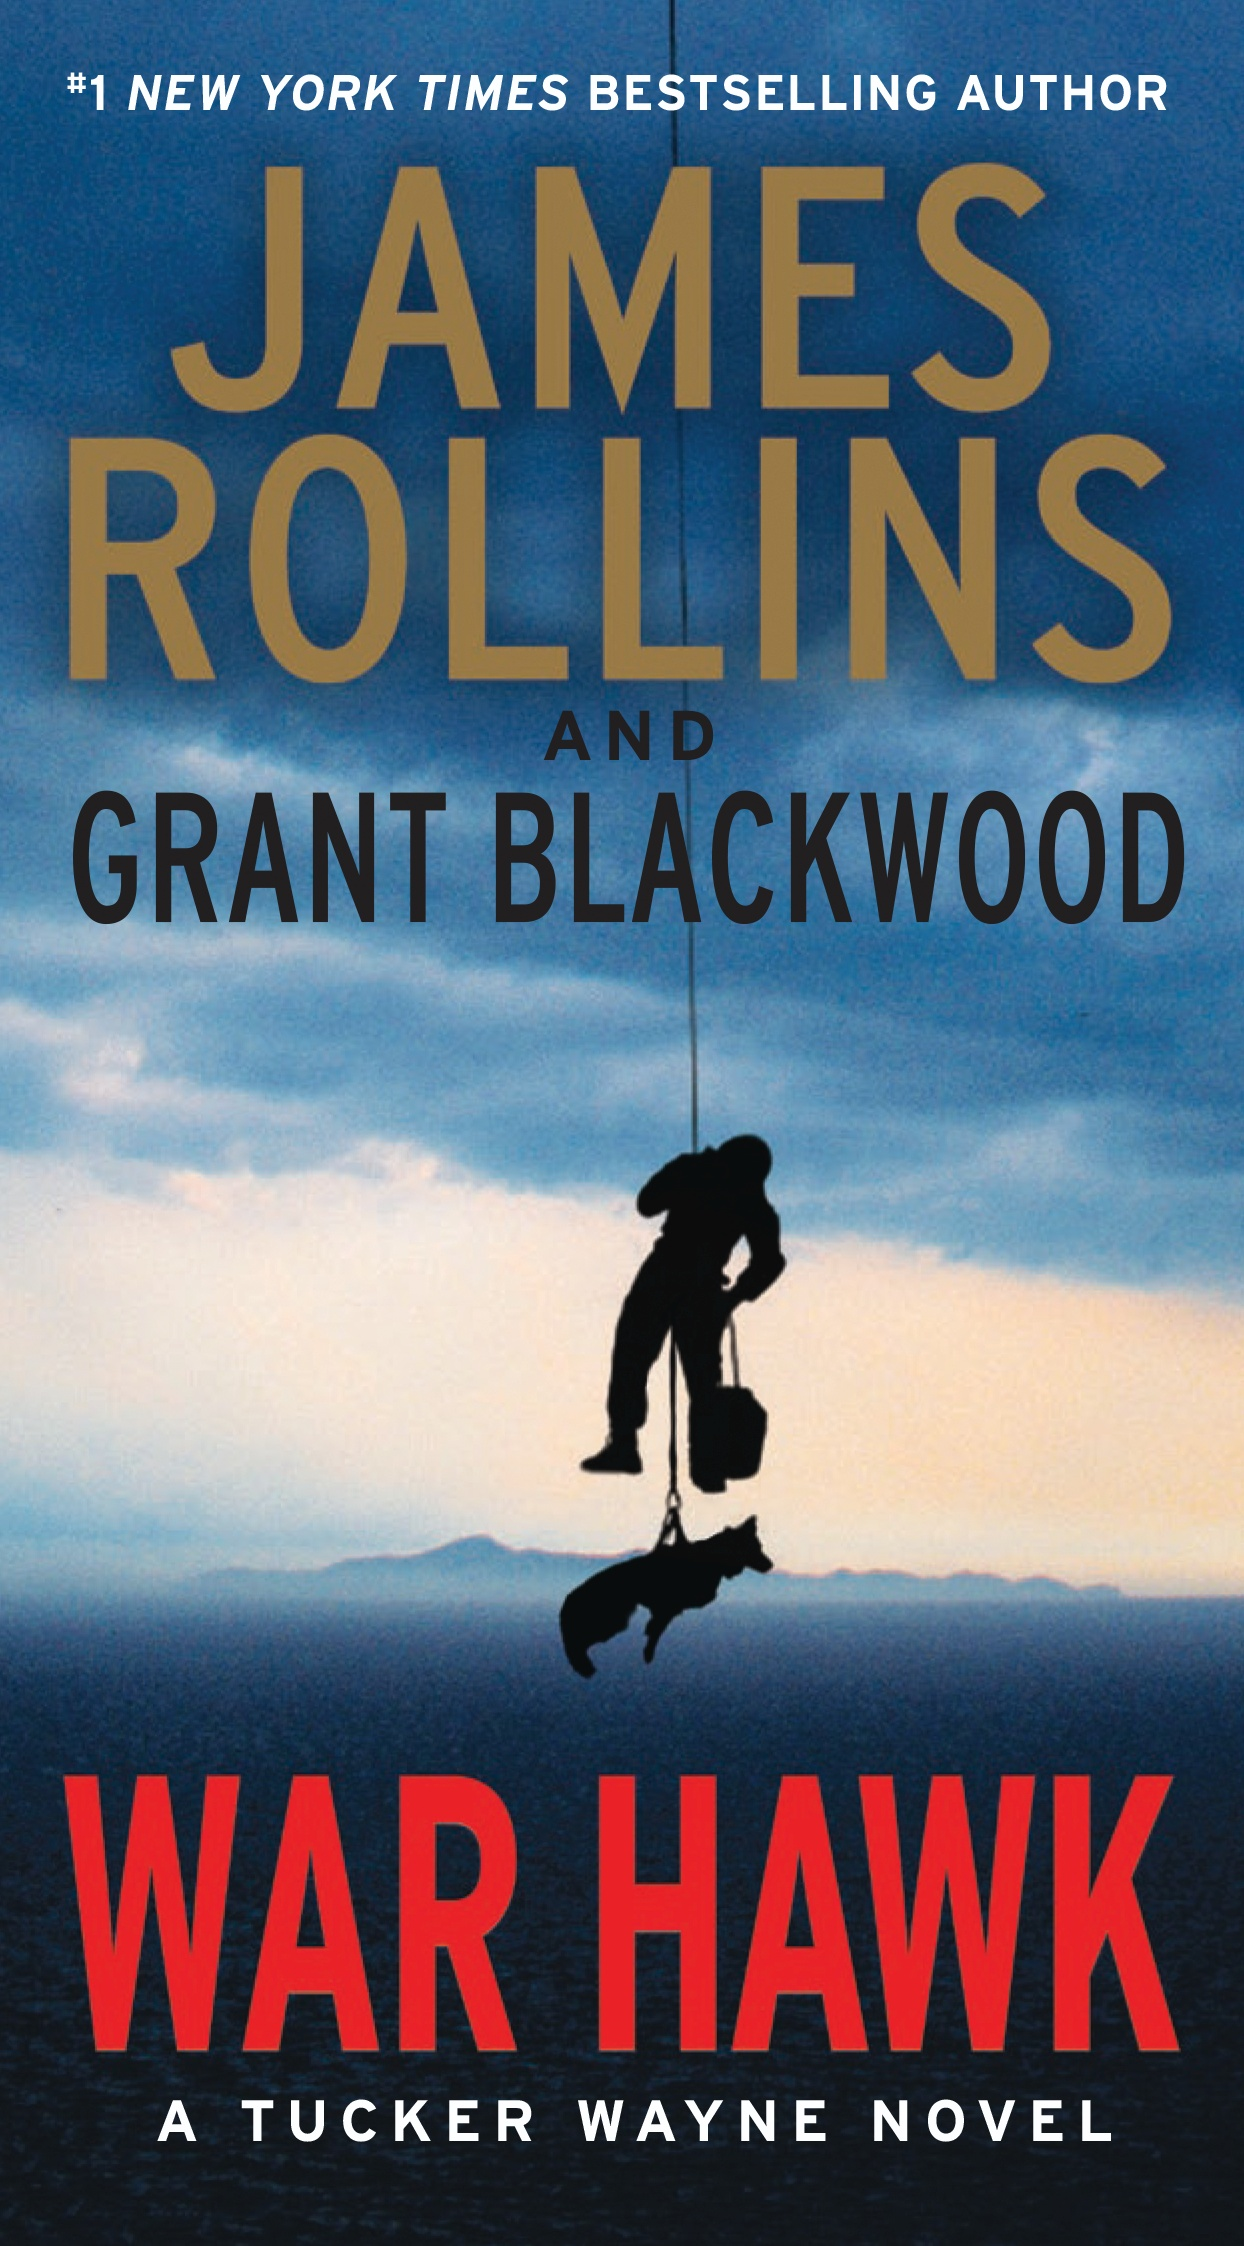 War Hawk by James Rollins and Grant Blackwood